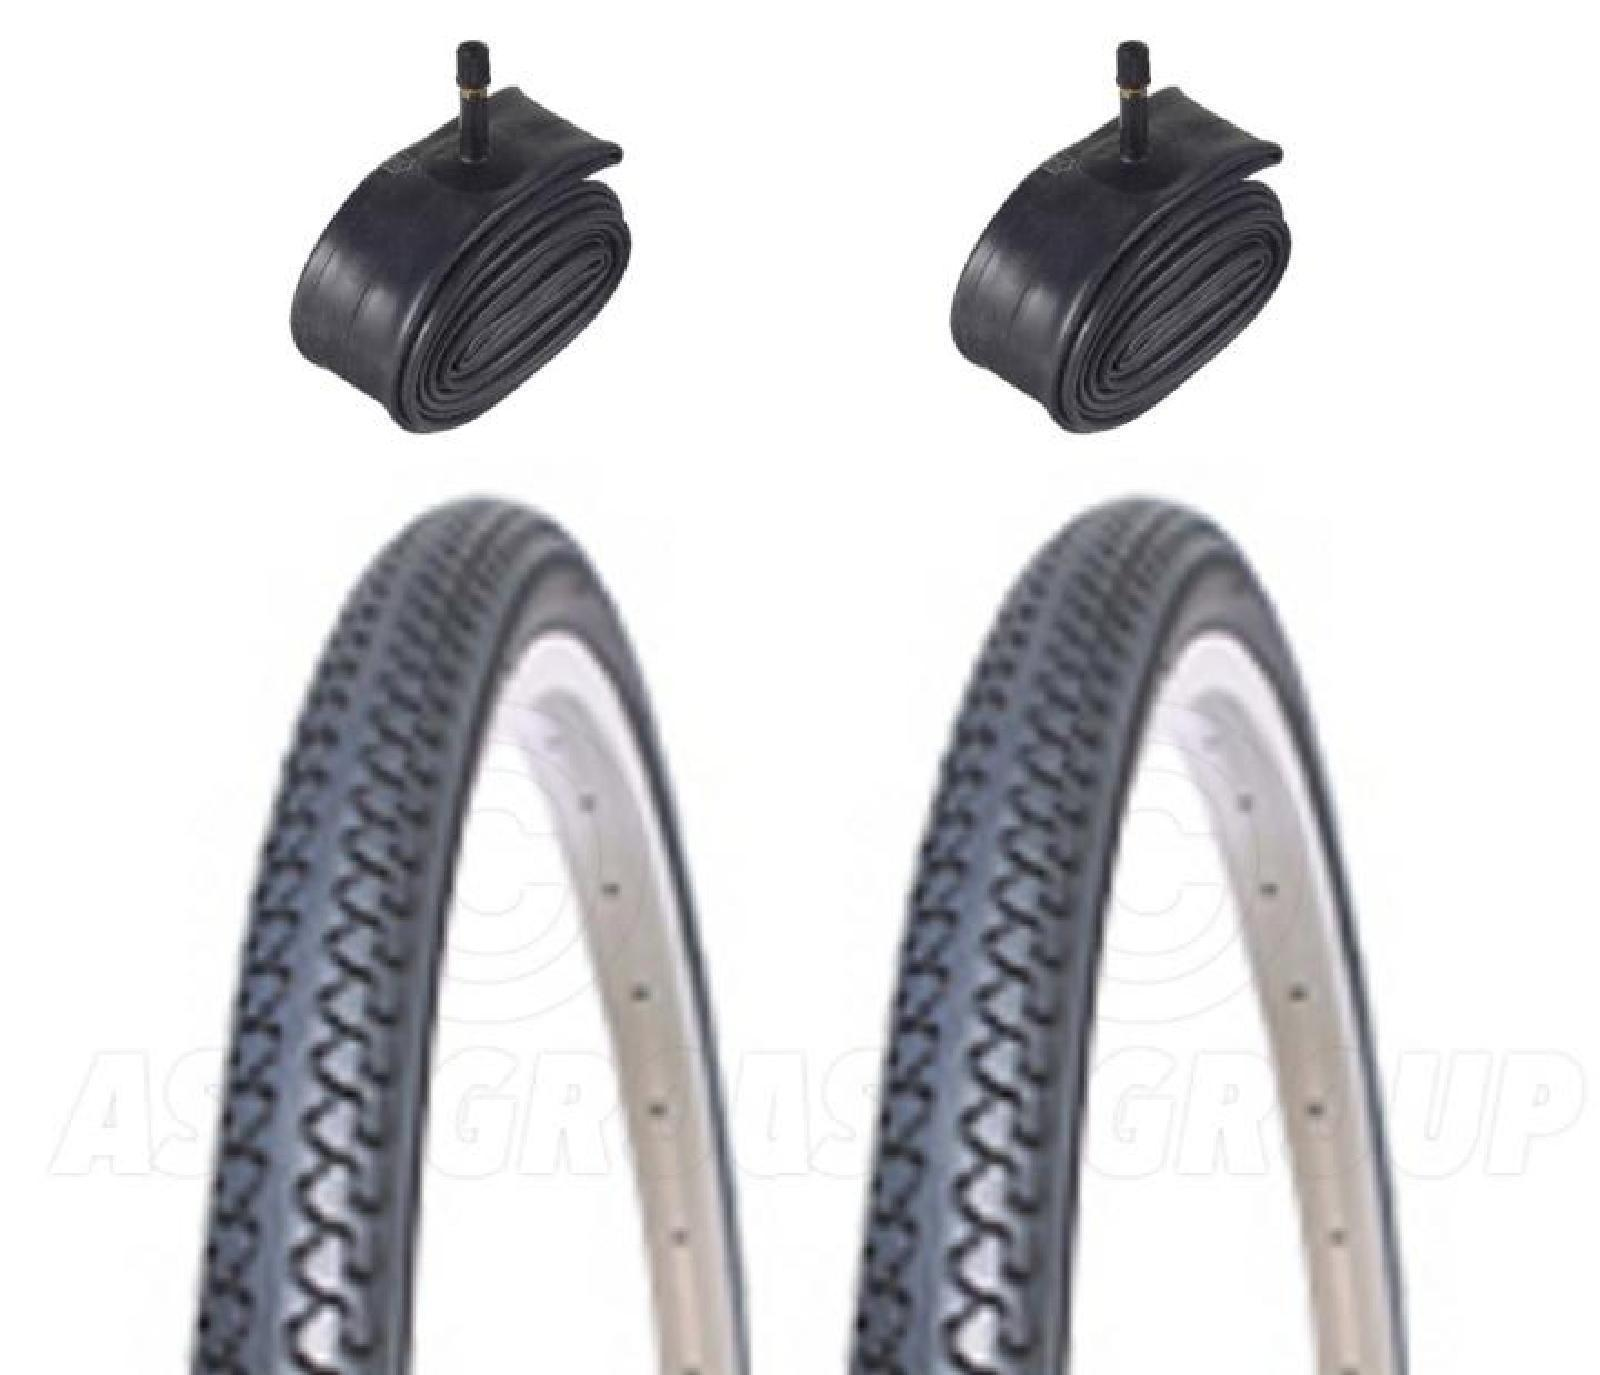 2 Bicycle Tyres Bike Tires - City / Town - 26 x 1 3/8 - With Schrader Tubes